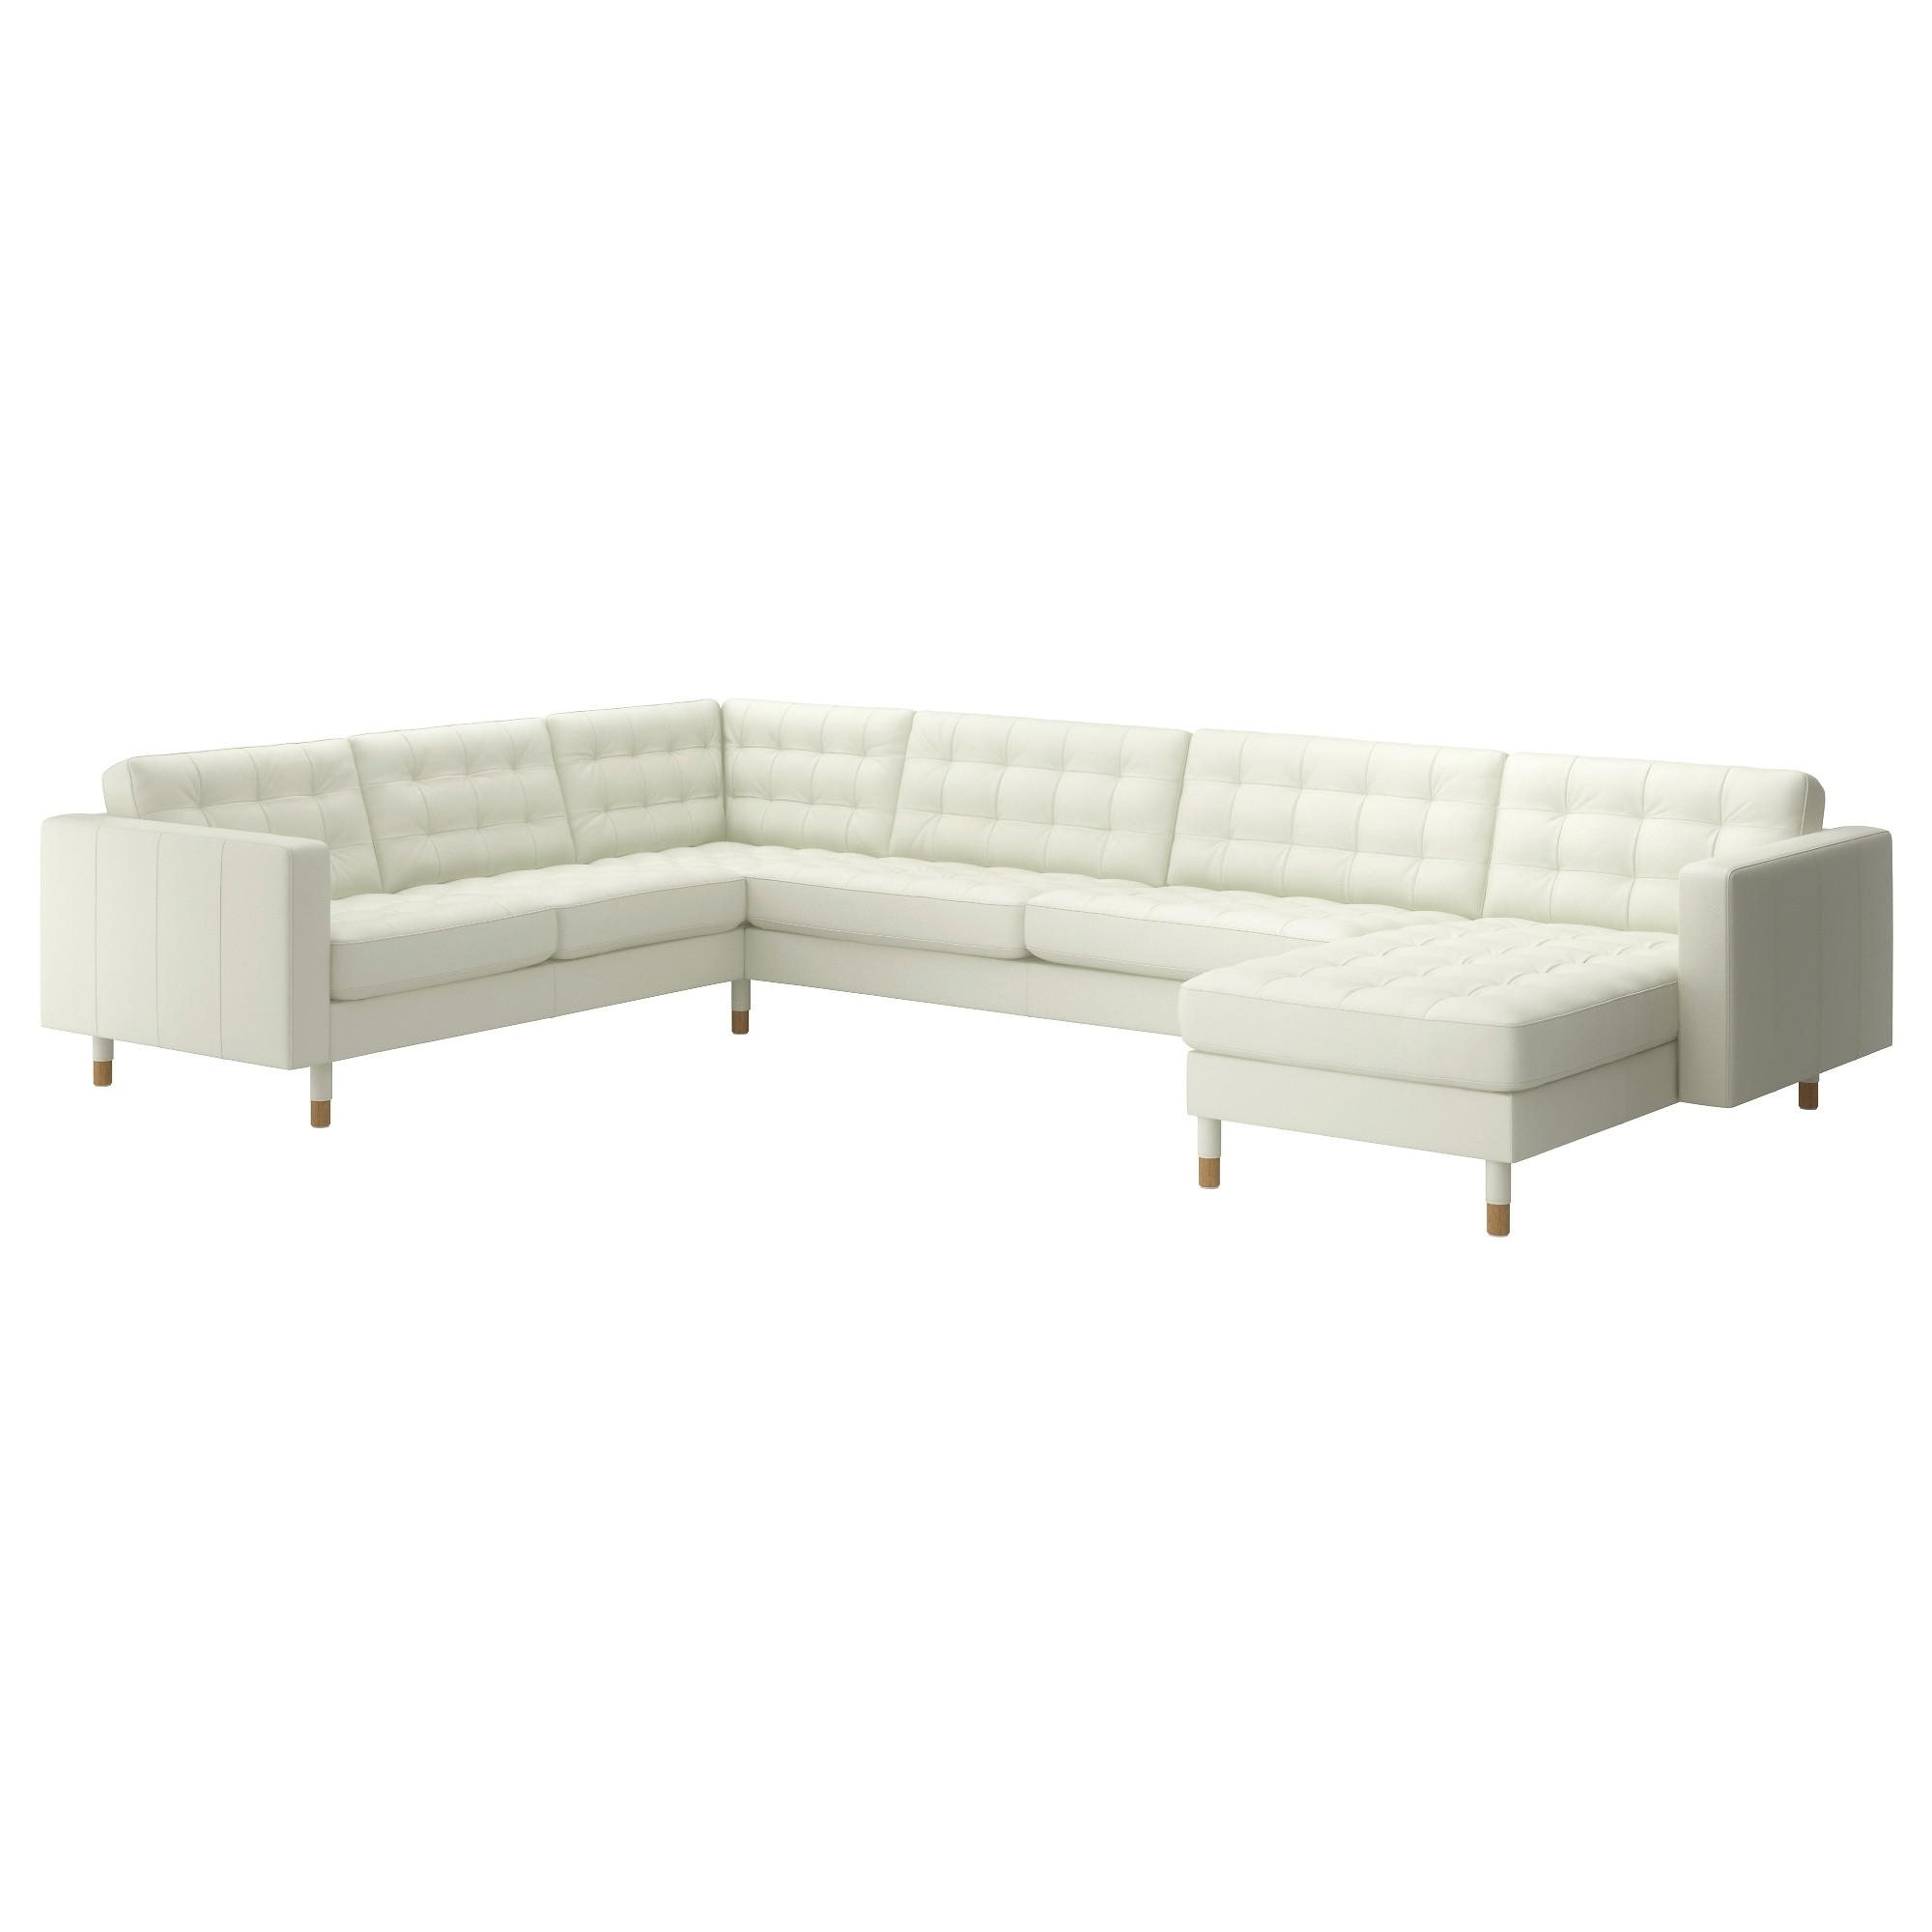 Sectional Sofas & Couches – Ikea Inside Ikea Sectional Sofa Sleeper (Image 15 of 20)